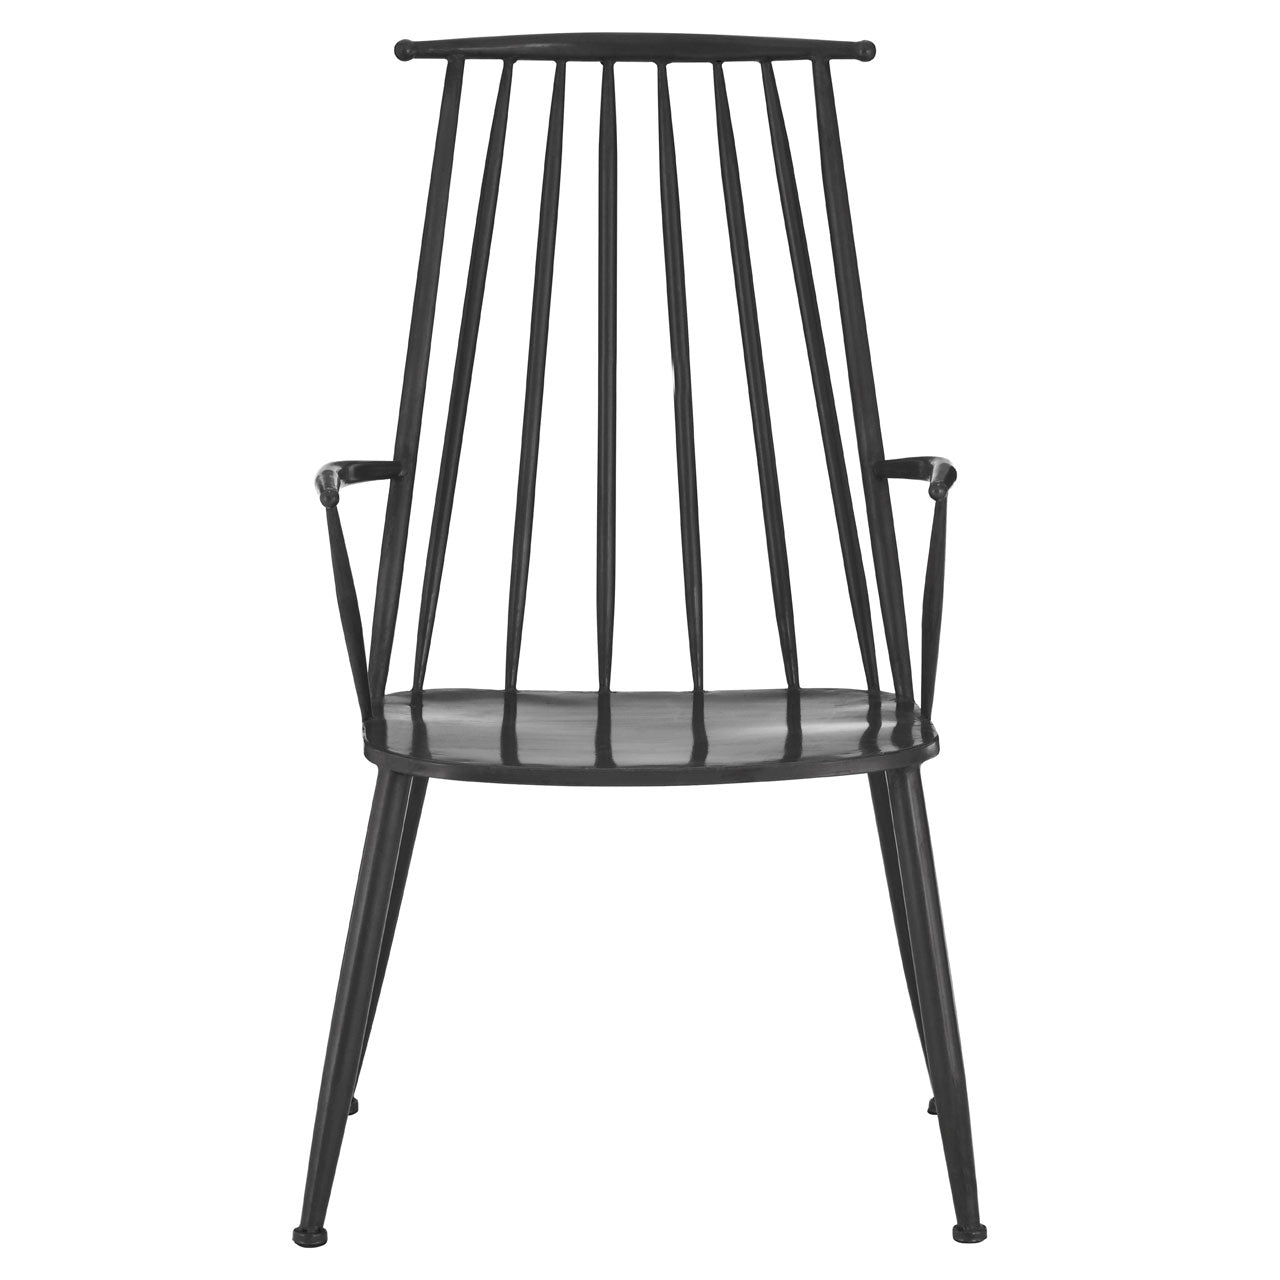 New Foundry Armchair in Steel